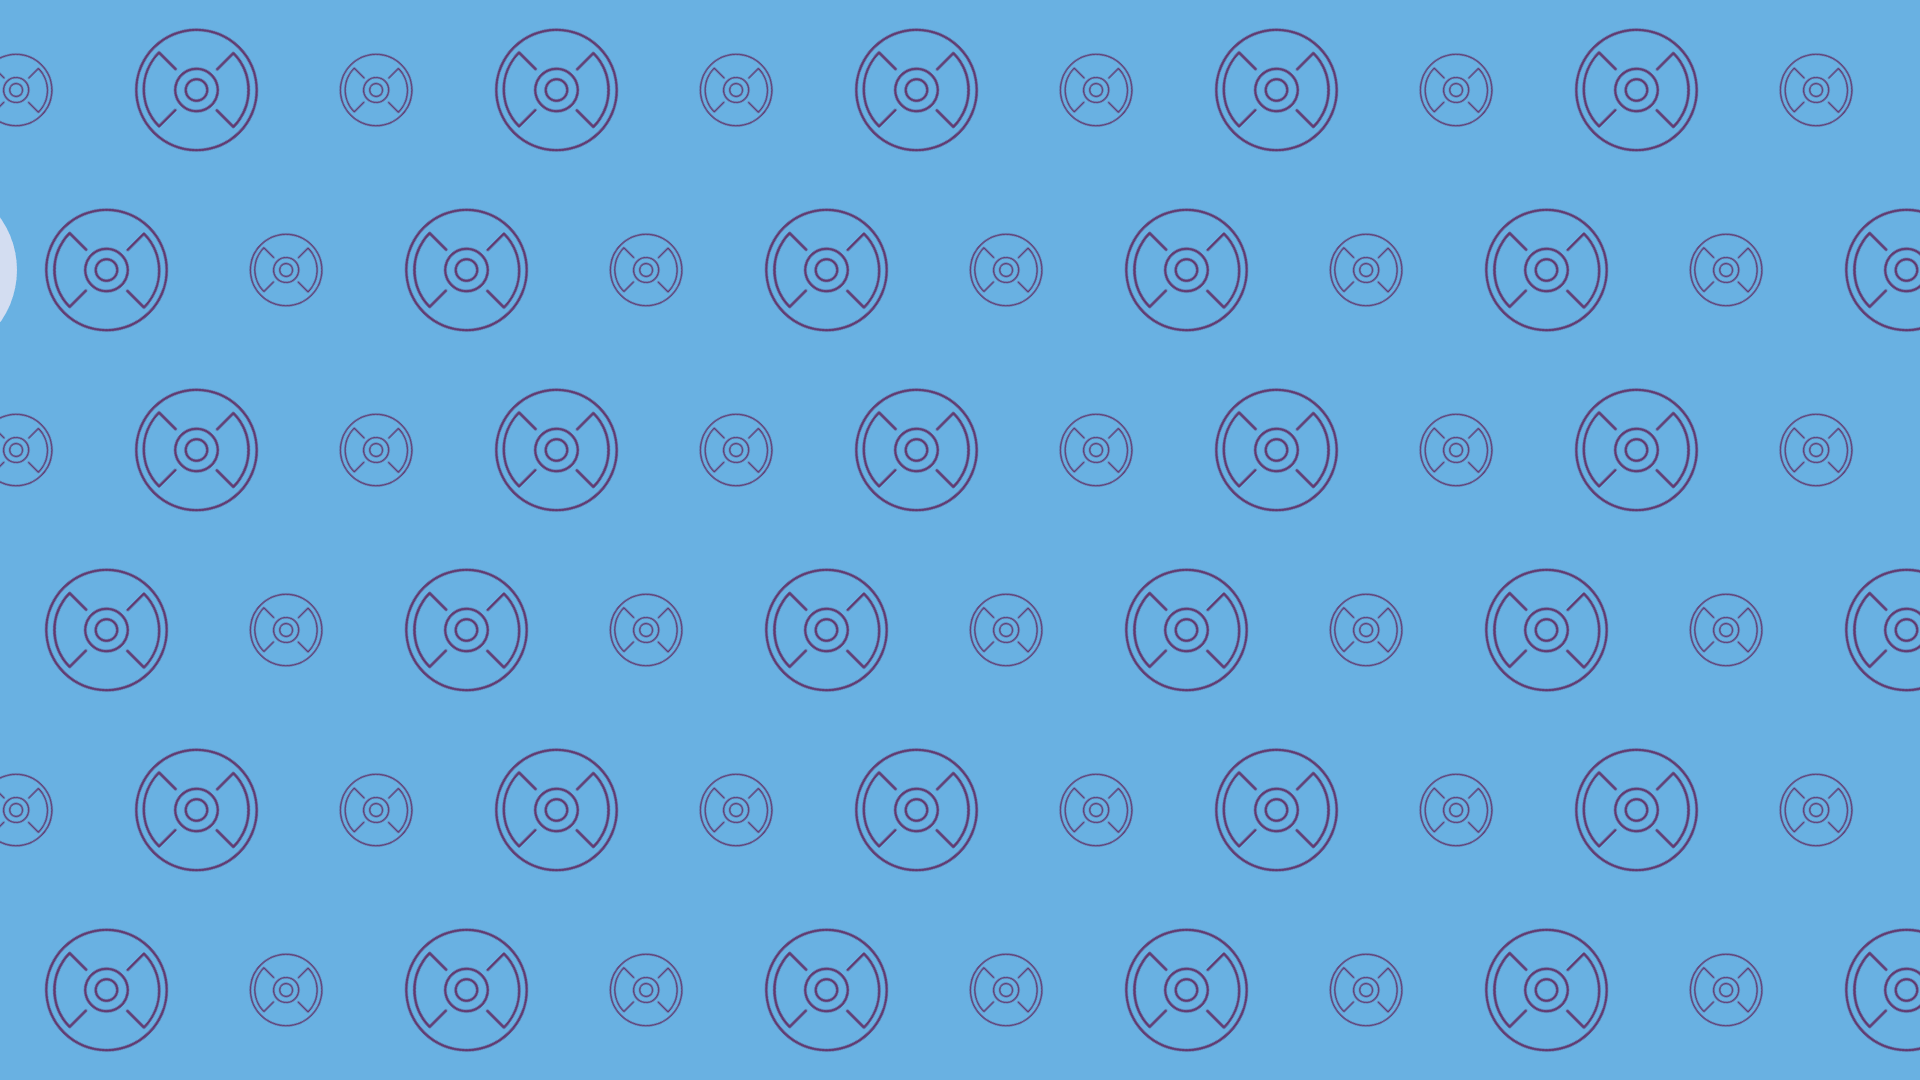 Blue,                Text,                Font,                Pattern,                Product,                Circle,                Design,                Number,                Line,                Shapes,                Movies,                Symbols,                Circles,                 Free Image